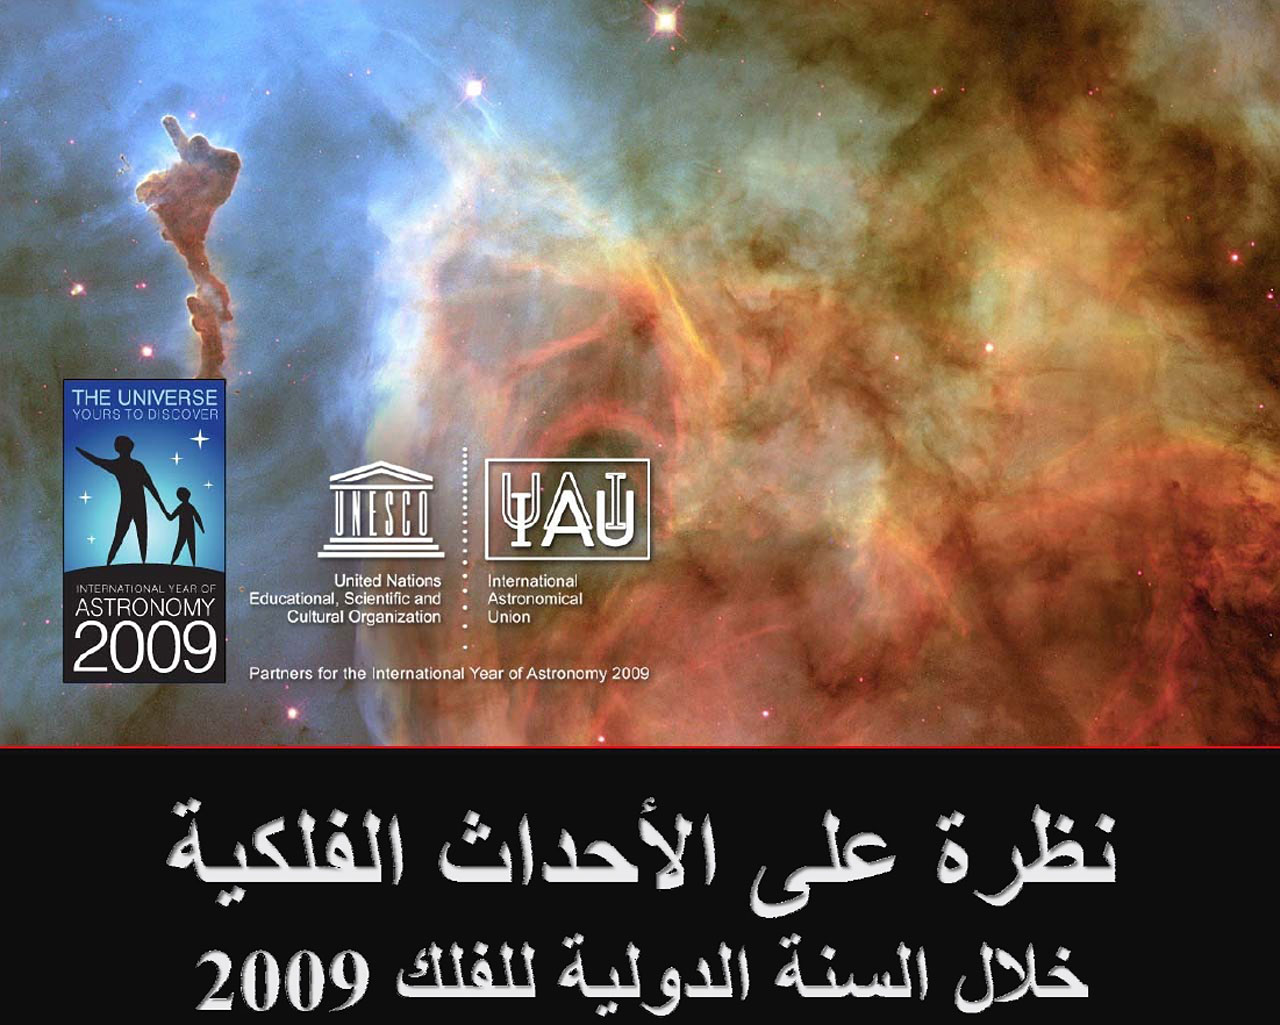 islam mathematics and astronomy - photo #31